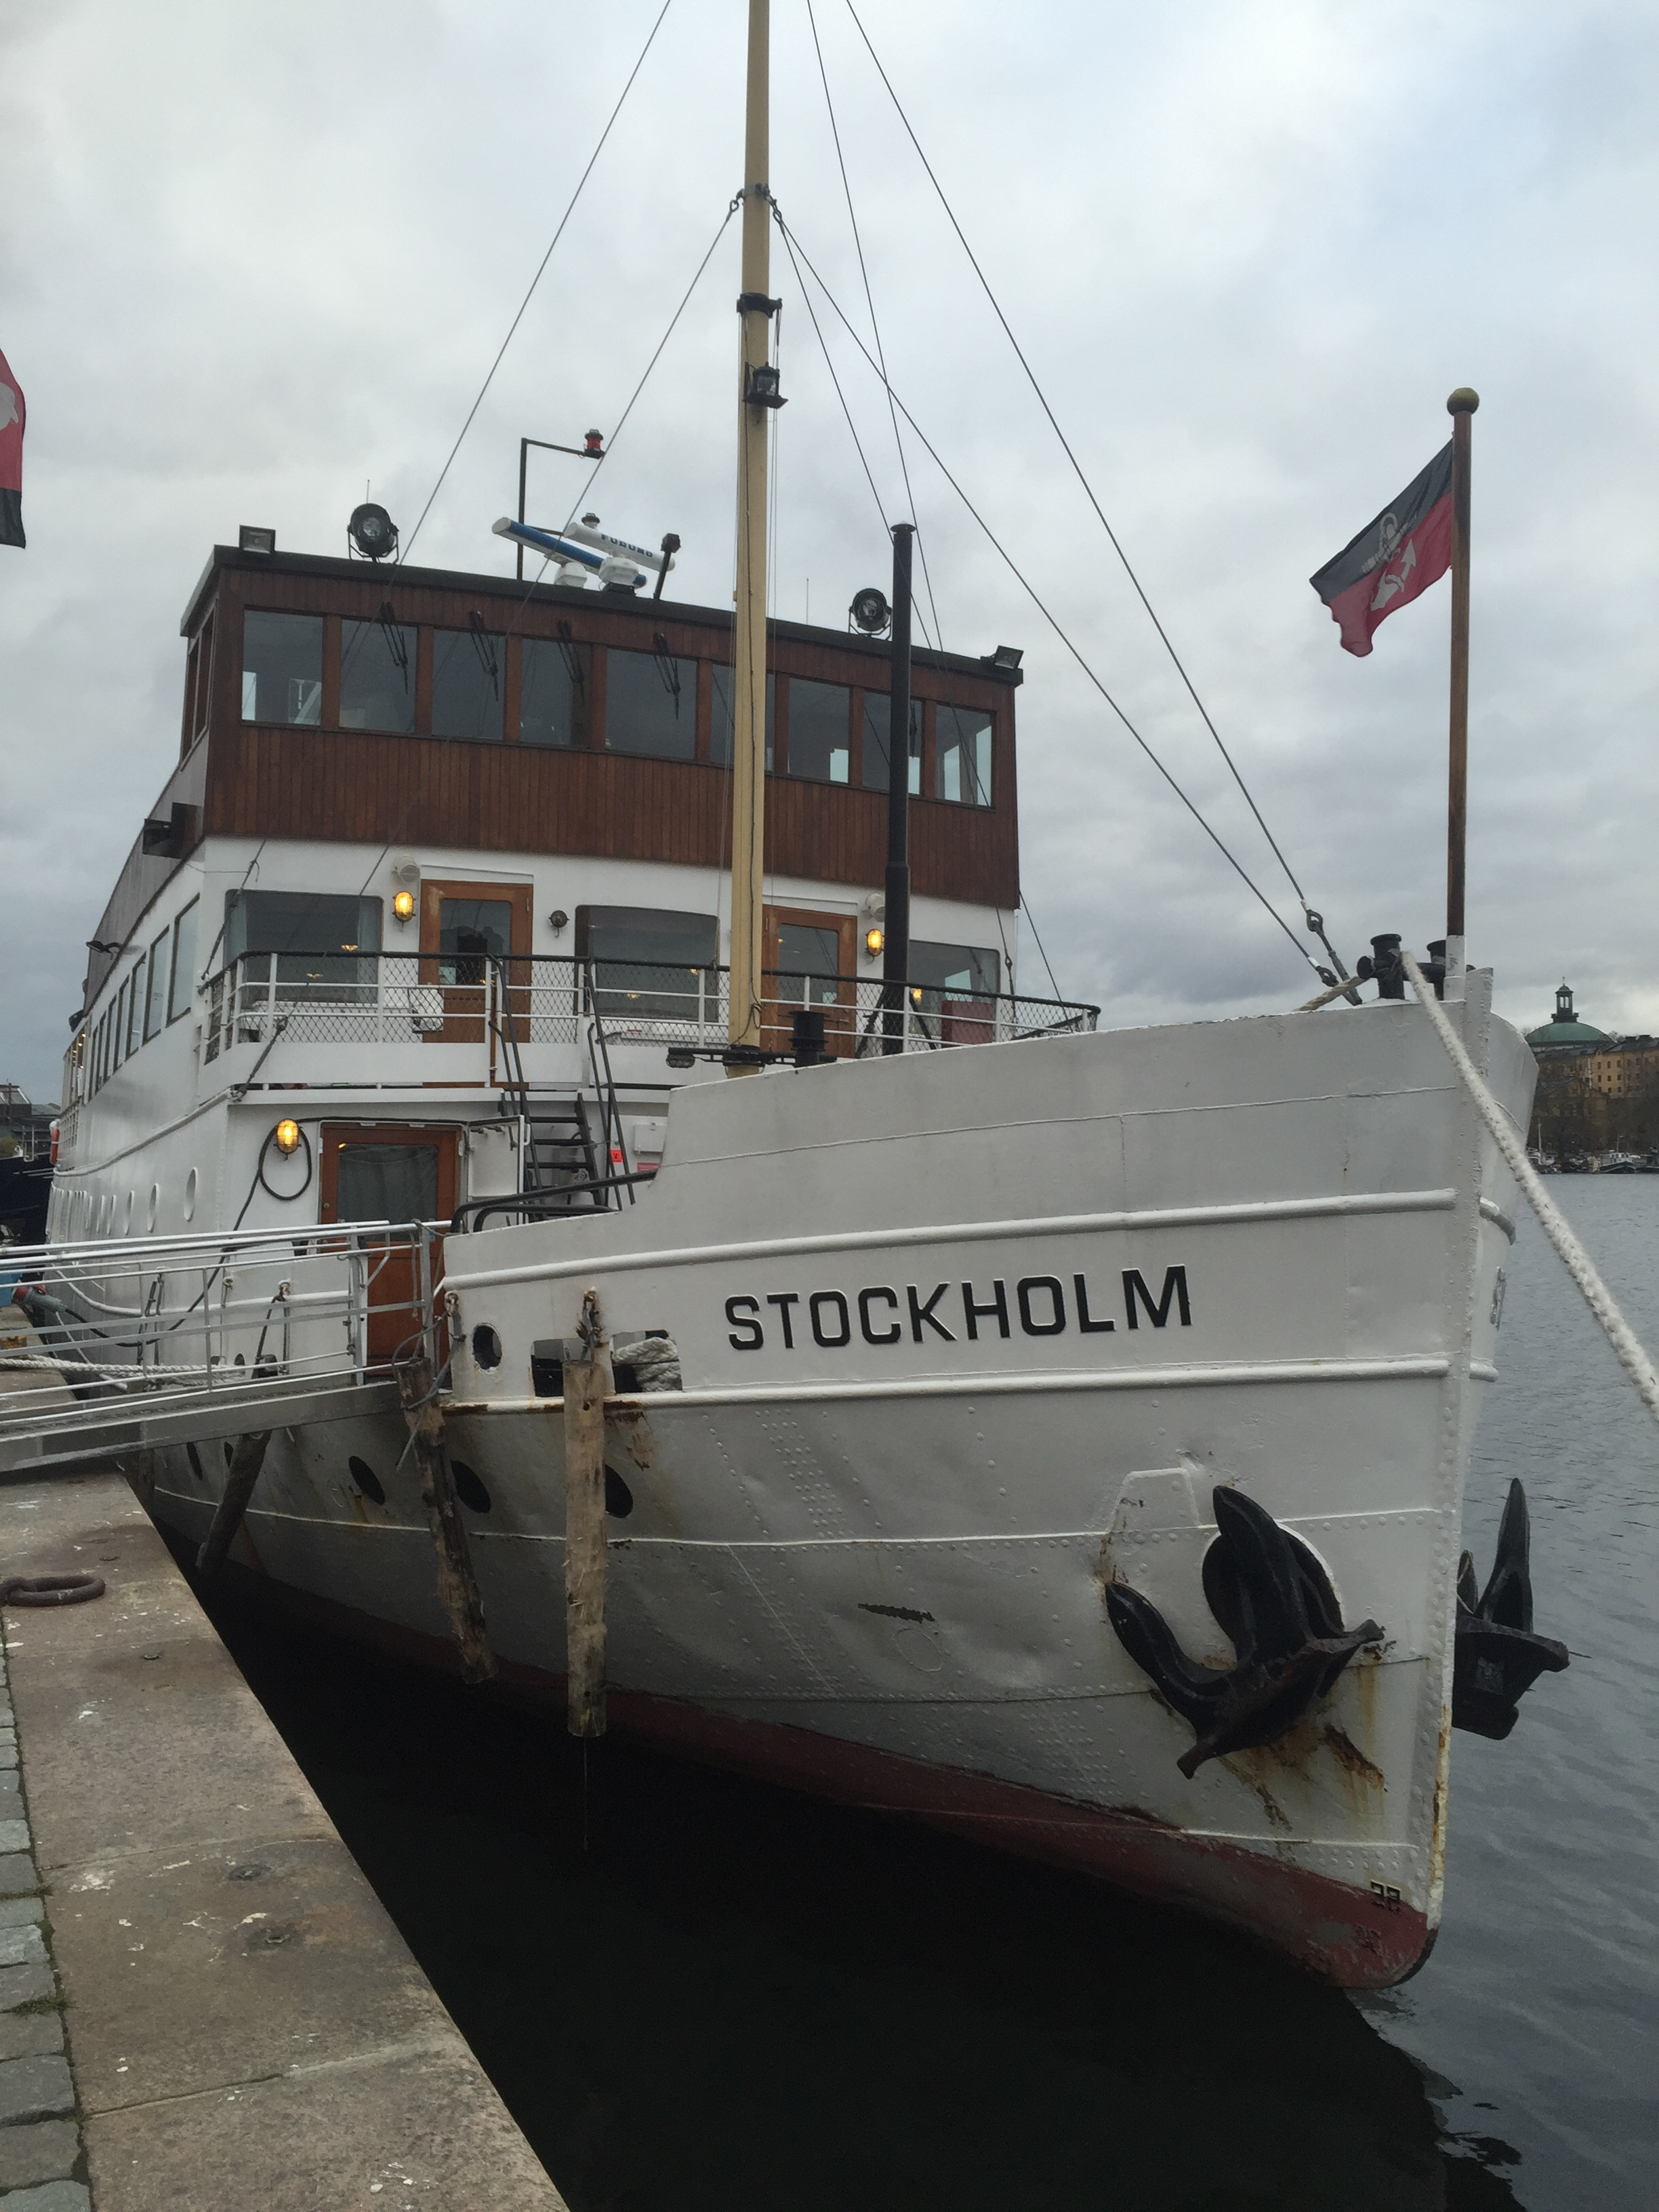 Stockholm Boats    photo by L.D. Van Cleave